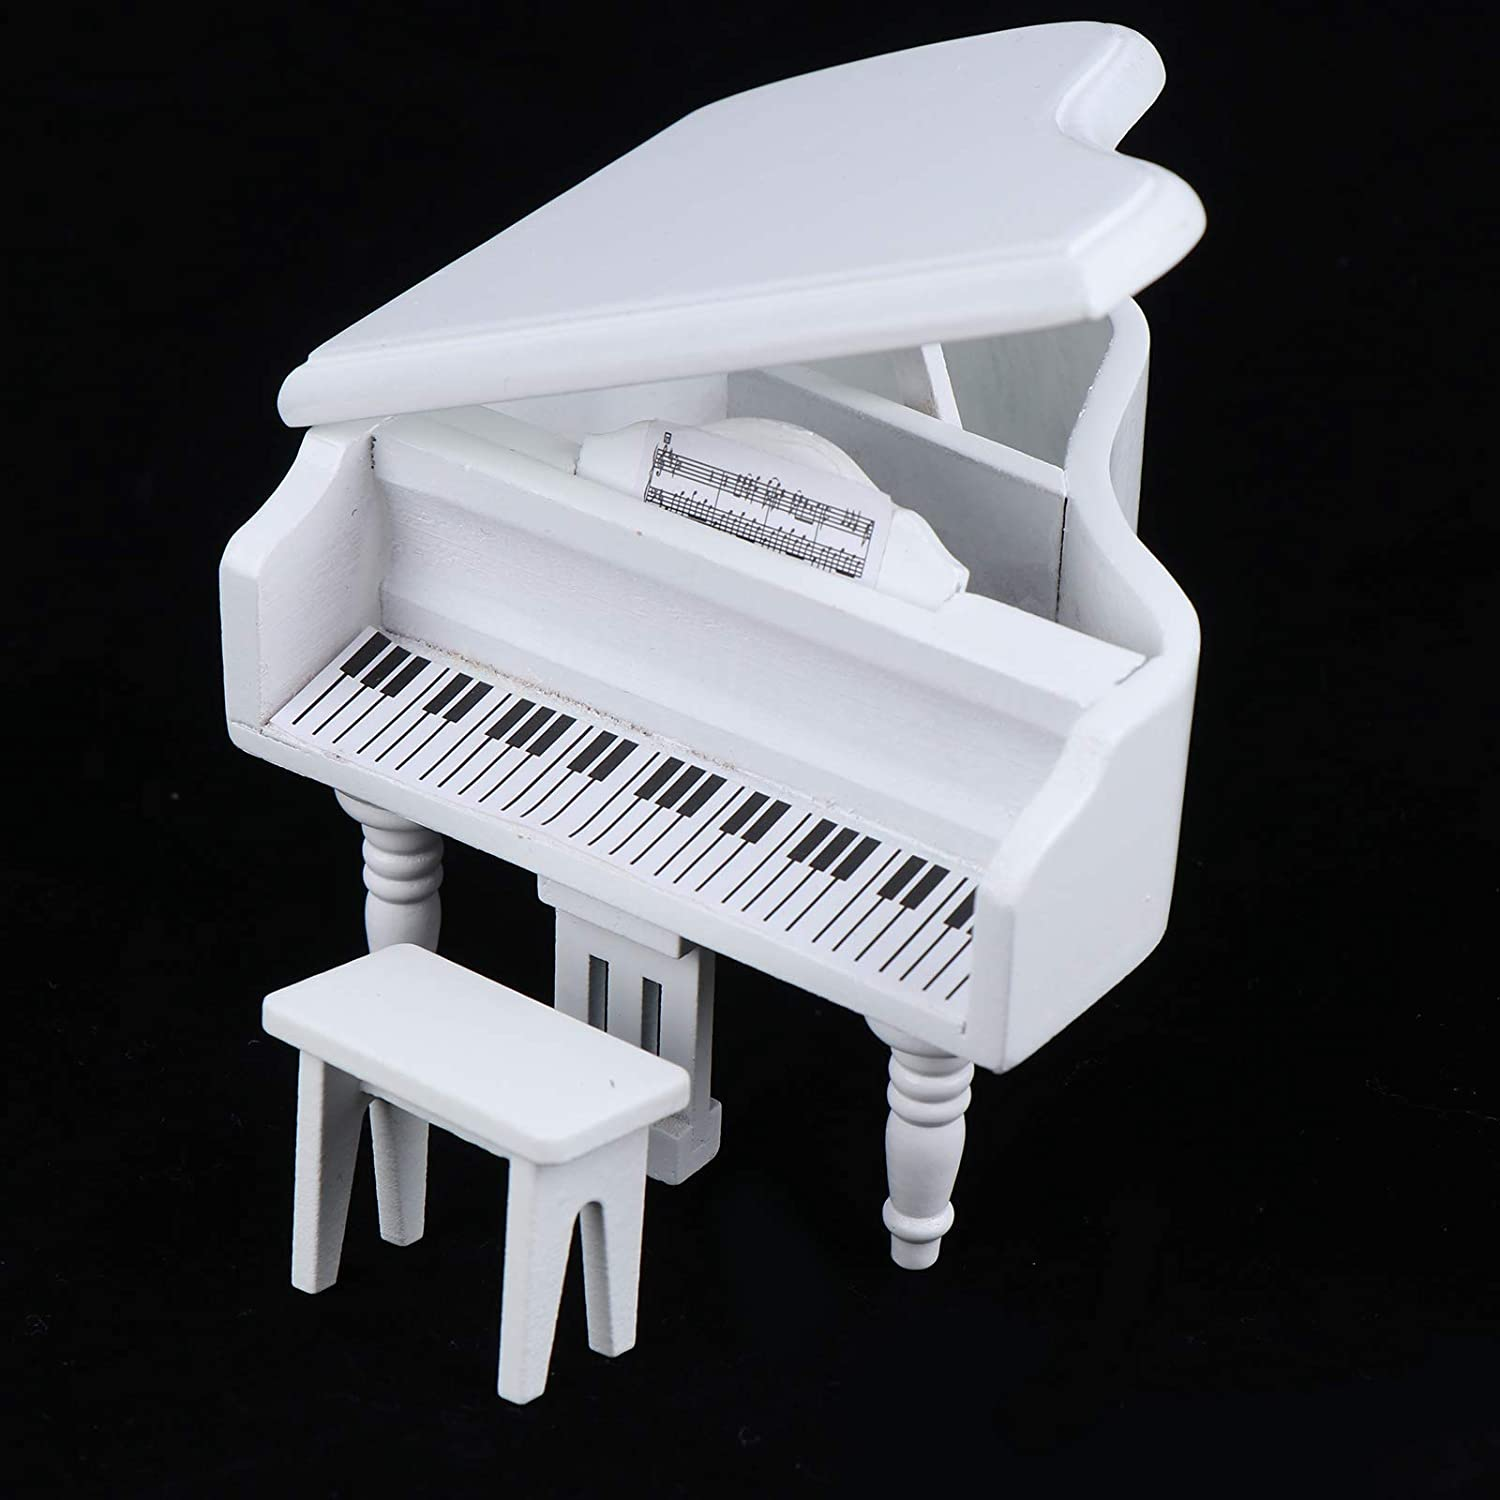 Haomian 1:12 Mini Dollhouse Piano Dollhouse Miniature White Piano with Music Stool Musical Instrument Ornament Dollhouse Model Home Decoration Doll House Furniture Accessories